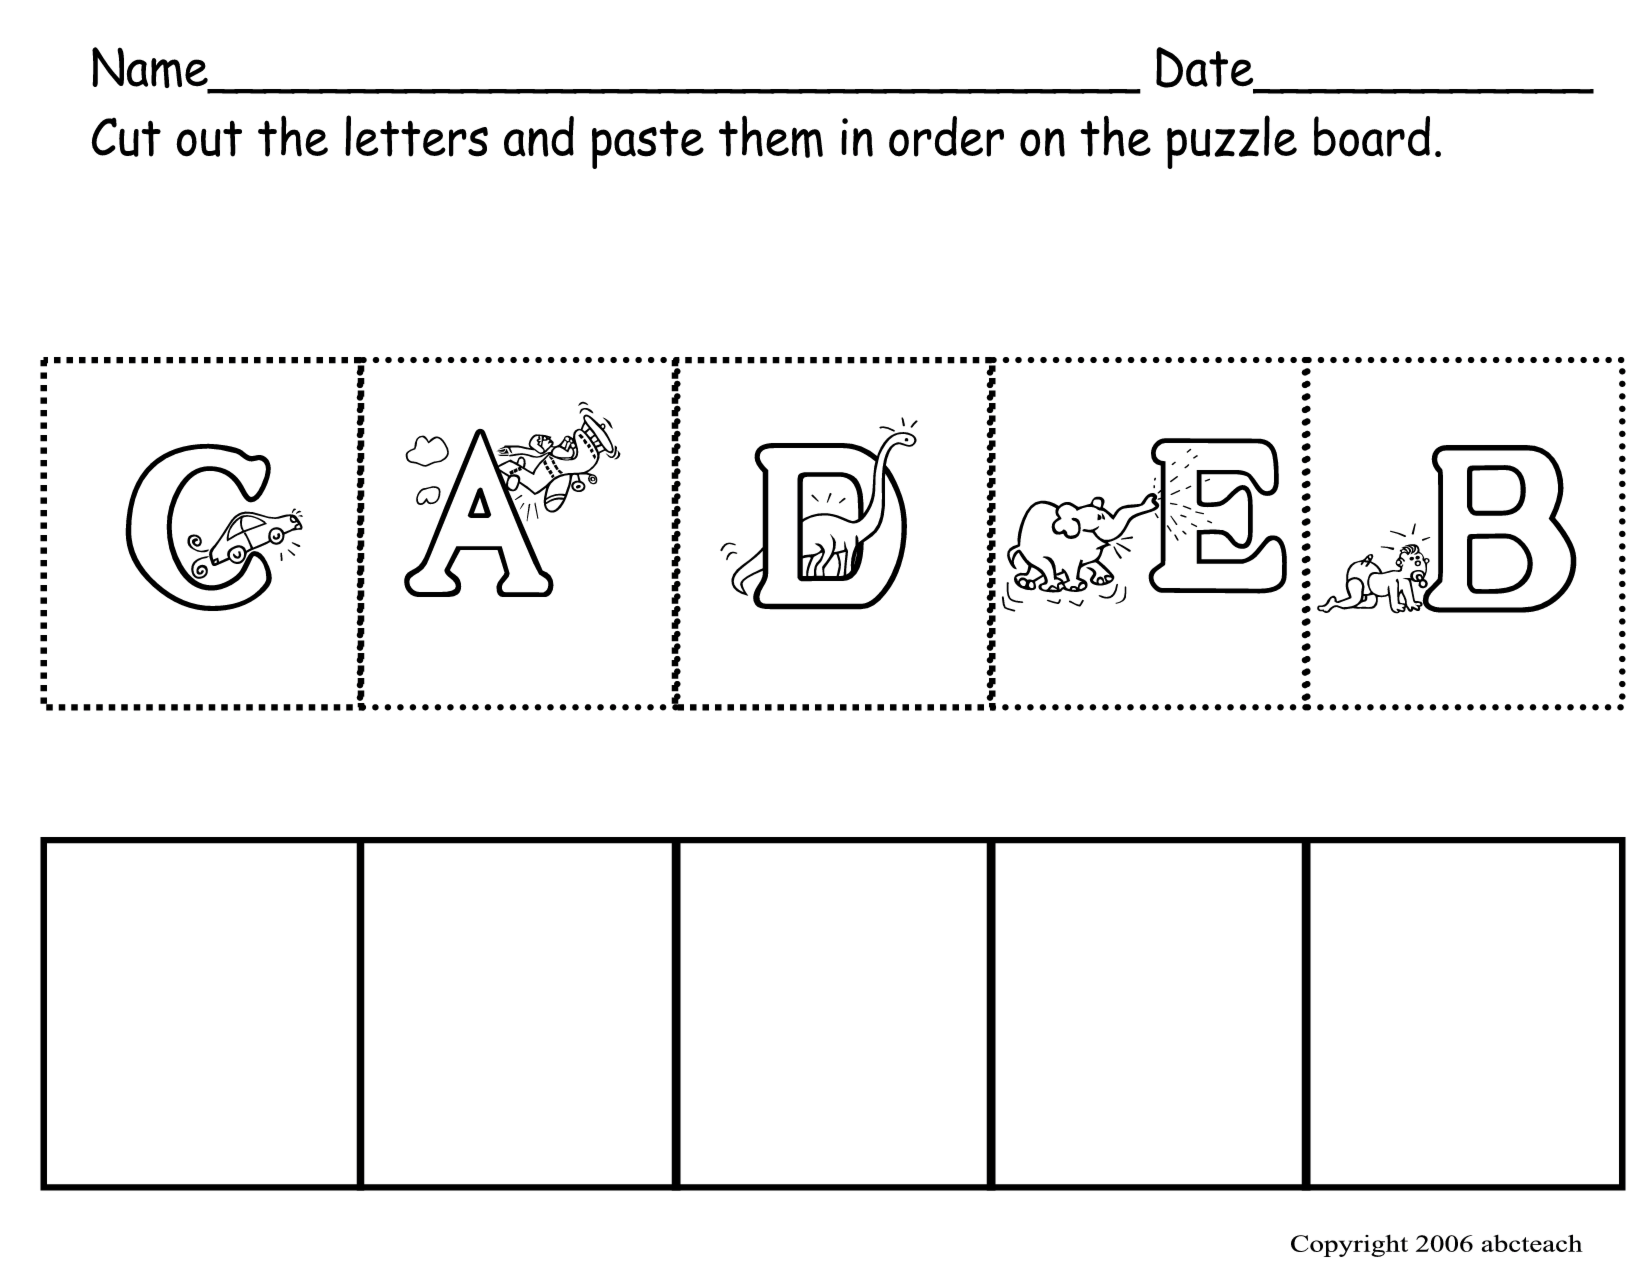 Worksheets Abc Worksheets For Pre-k alphabet worksheets for preschoolers abc preschool pdf pdf